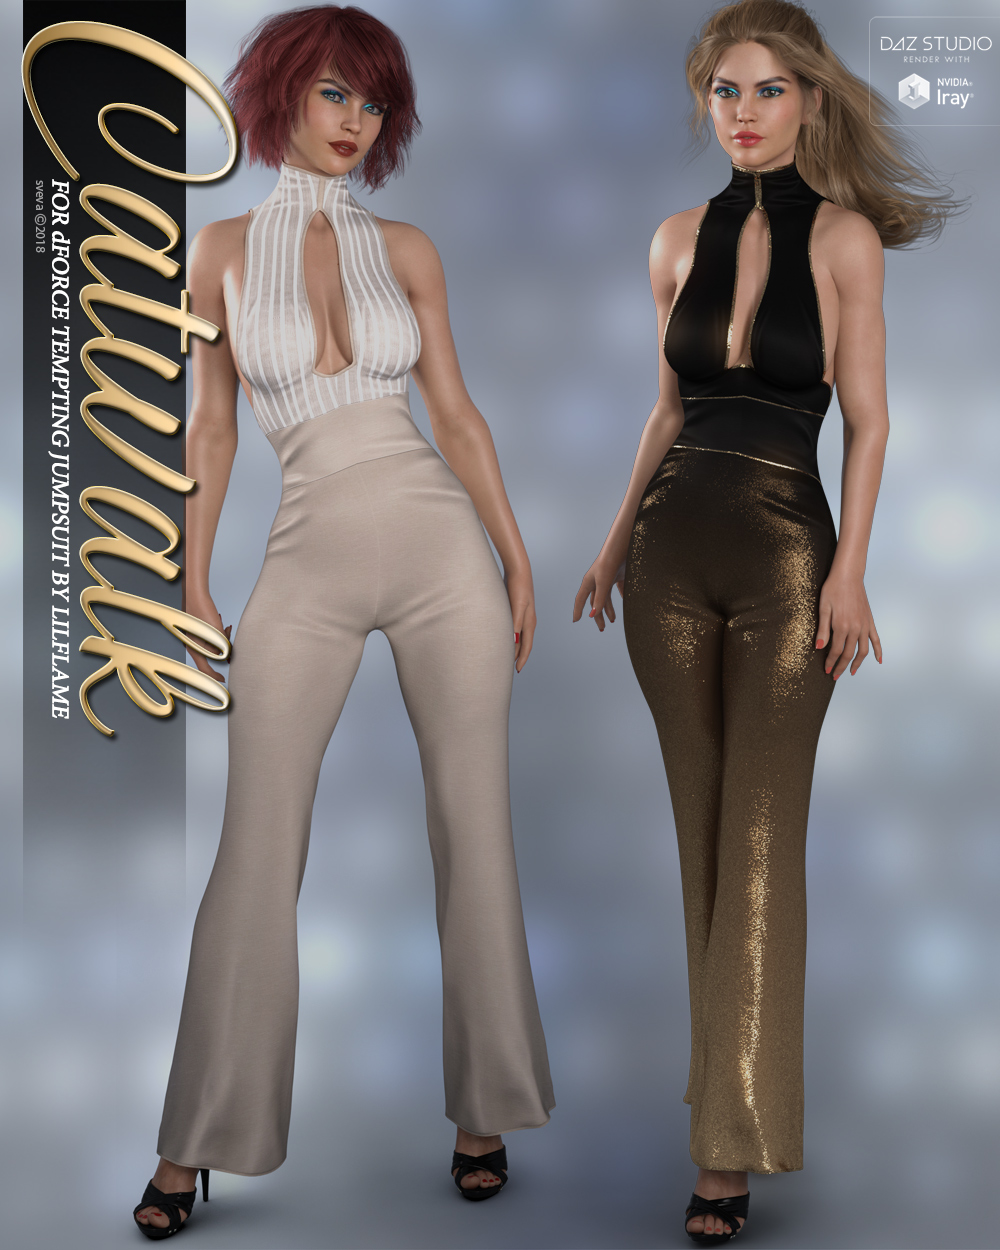 3D-Almanac – The One-Stop Catalog of 3D-Content for DAZ Studio and Poser